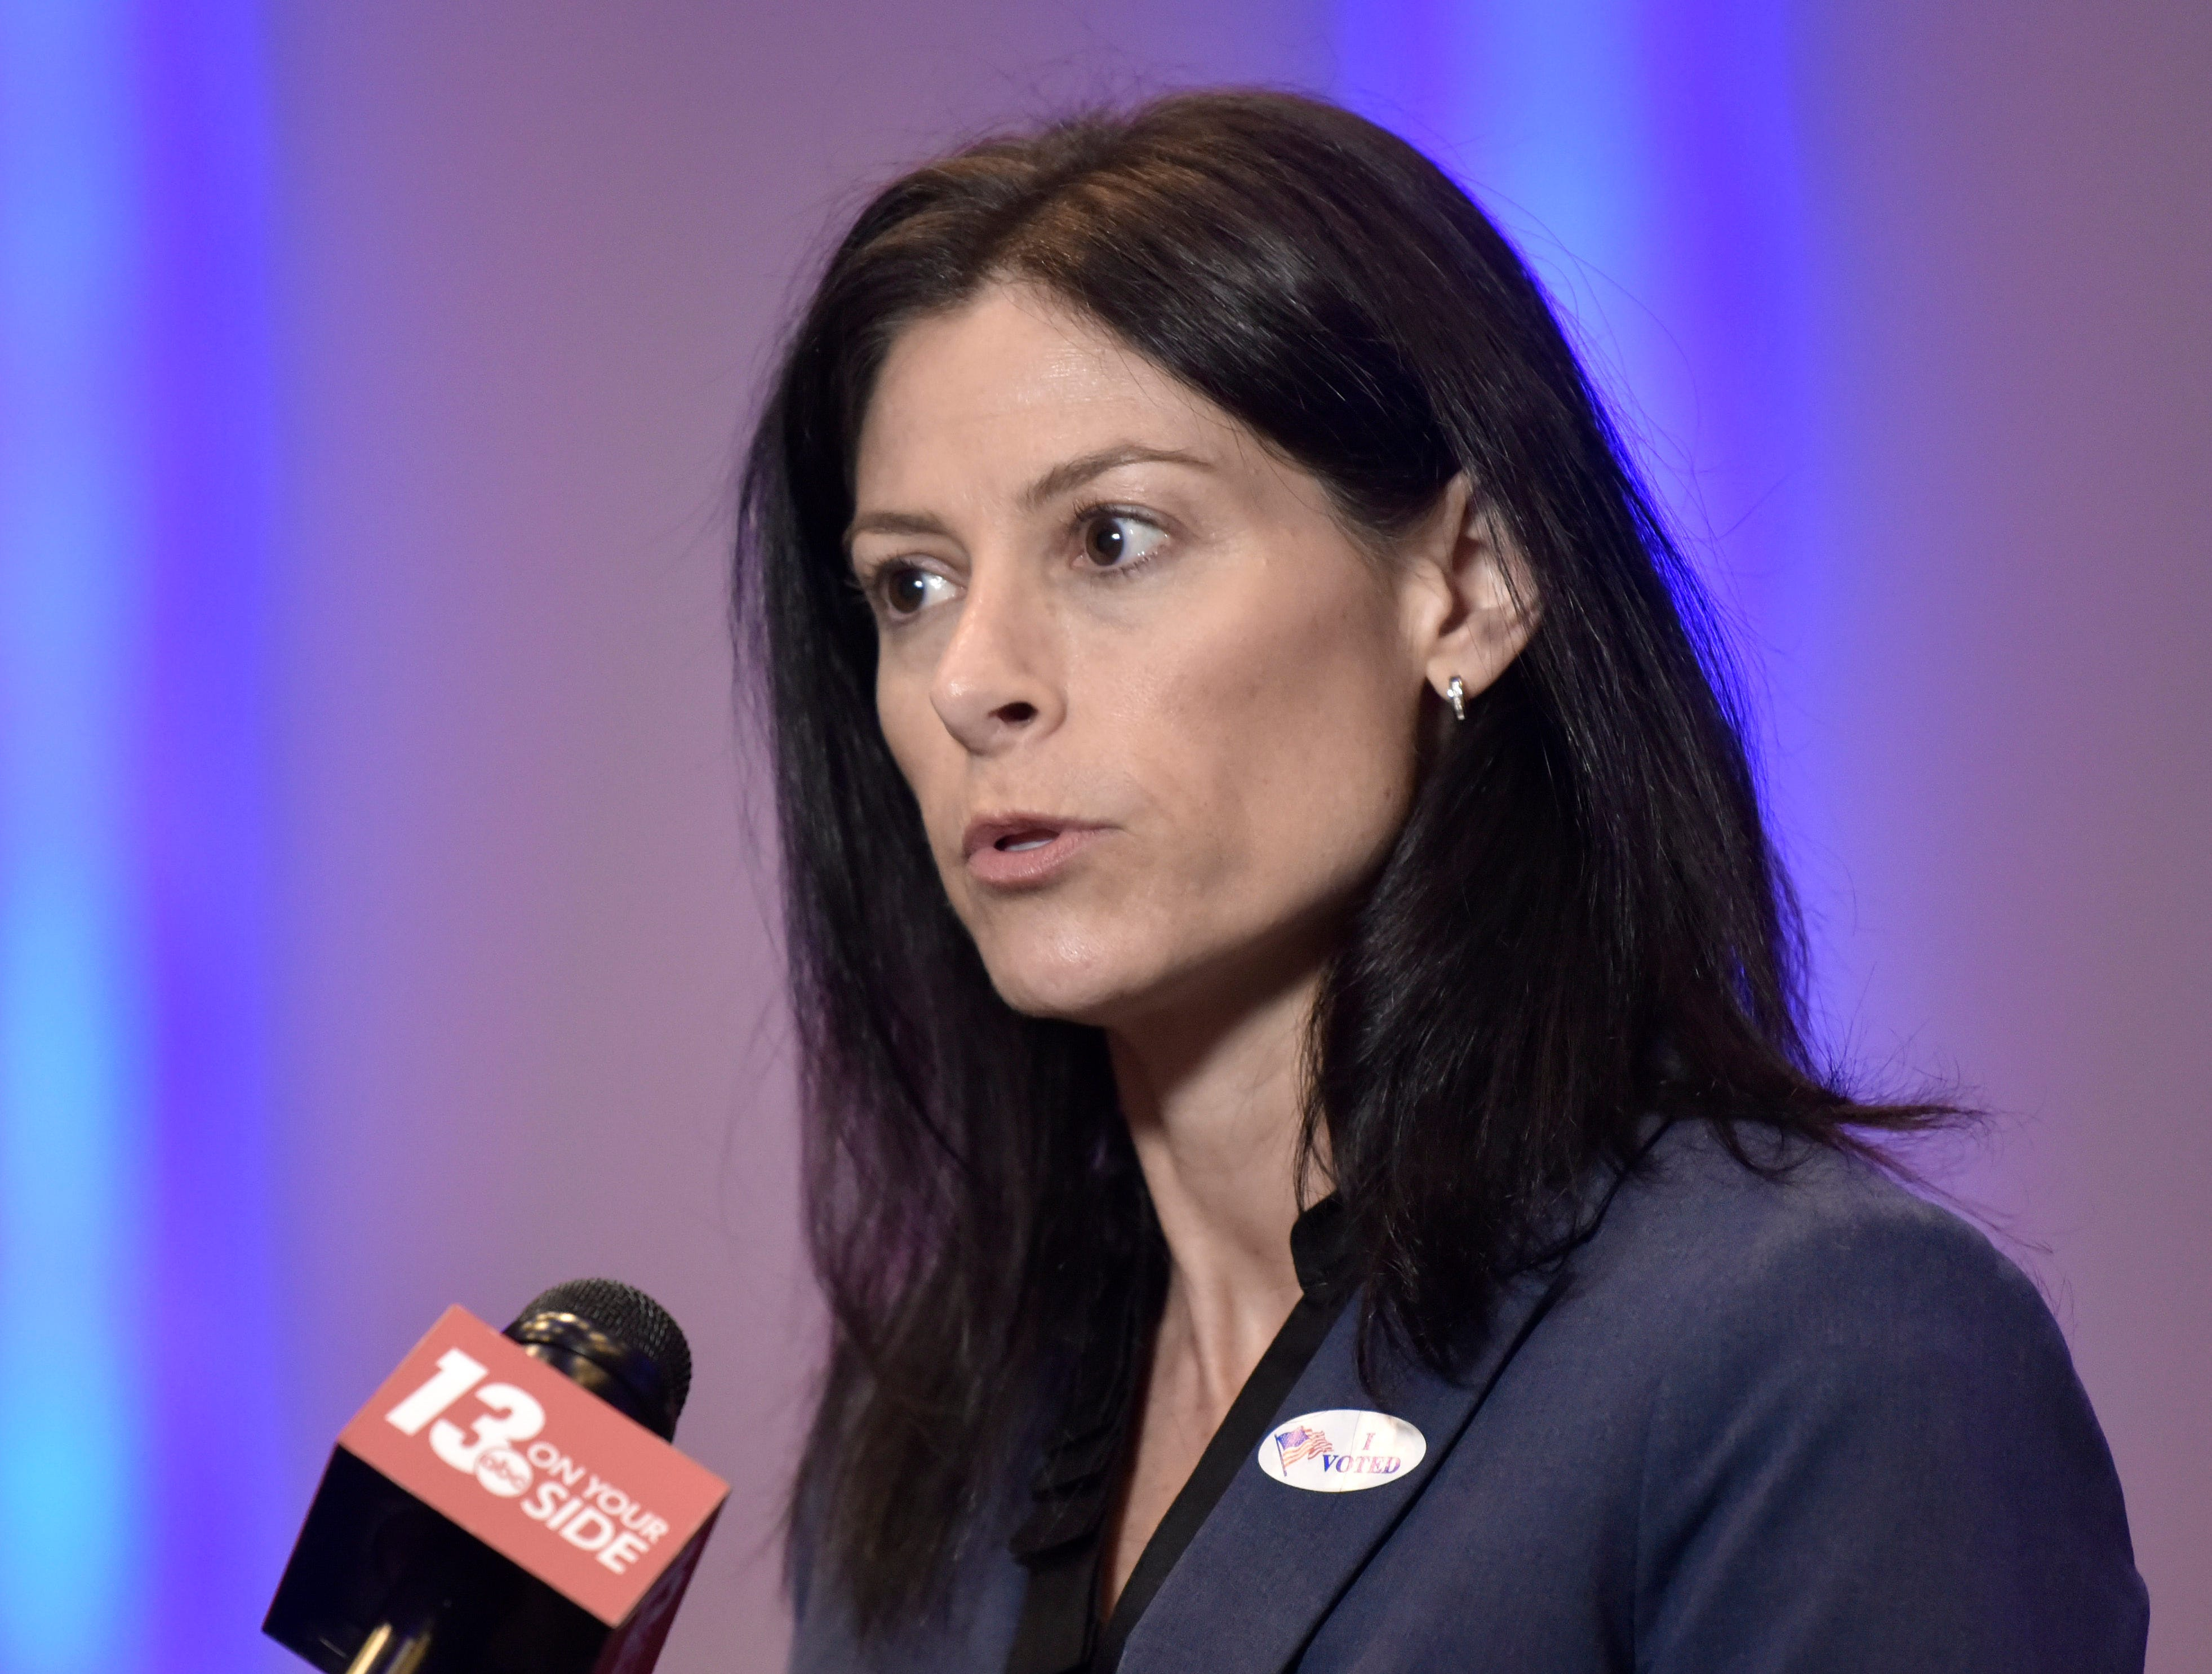 Democratic Attorney General candidate Dana Nessel is interviewed by WZZM 13 TV before the Abdul El-Sayed For Governor reception at Cobo Center in Detroit Tuesday night.